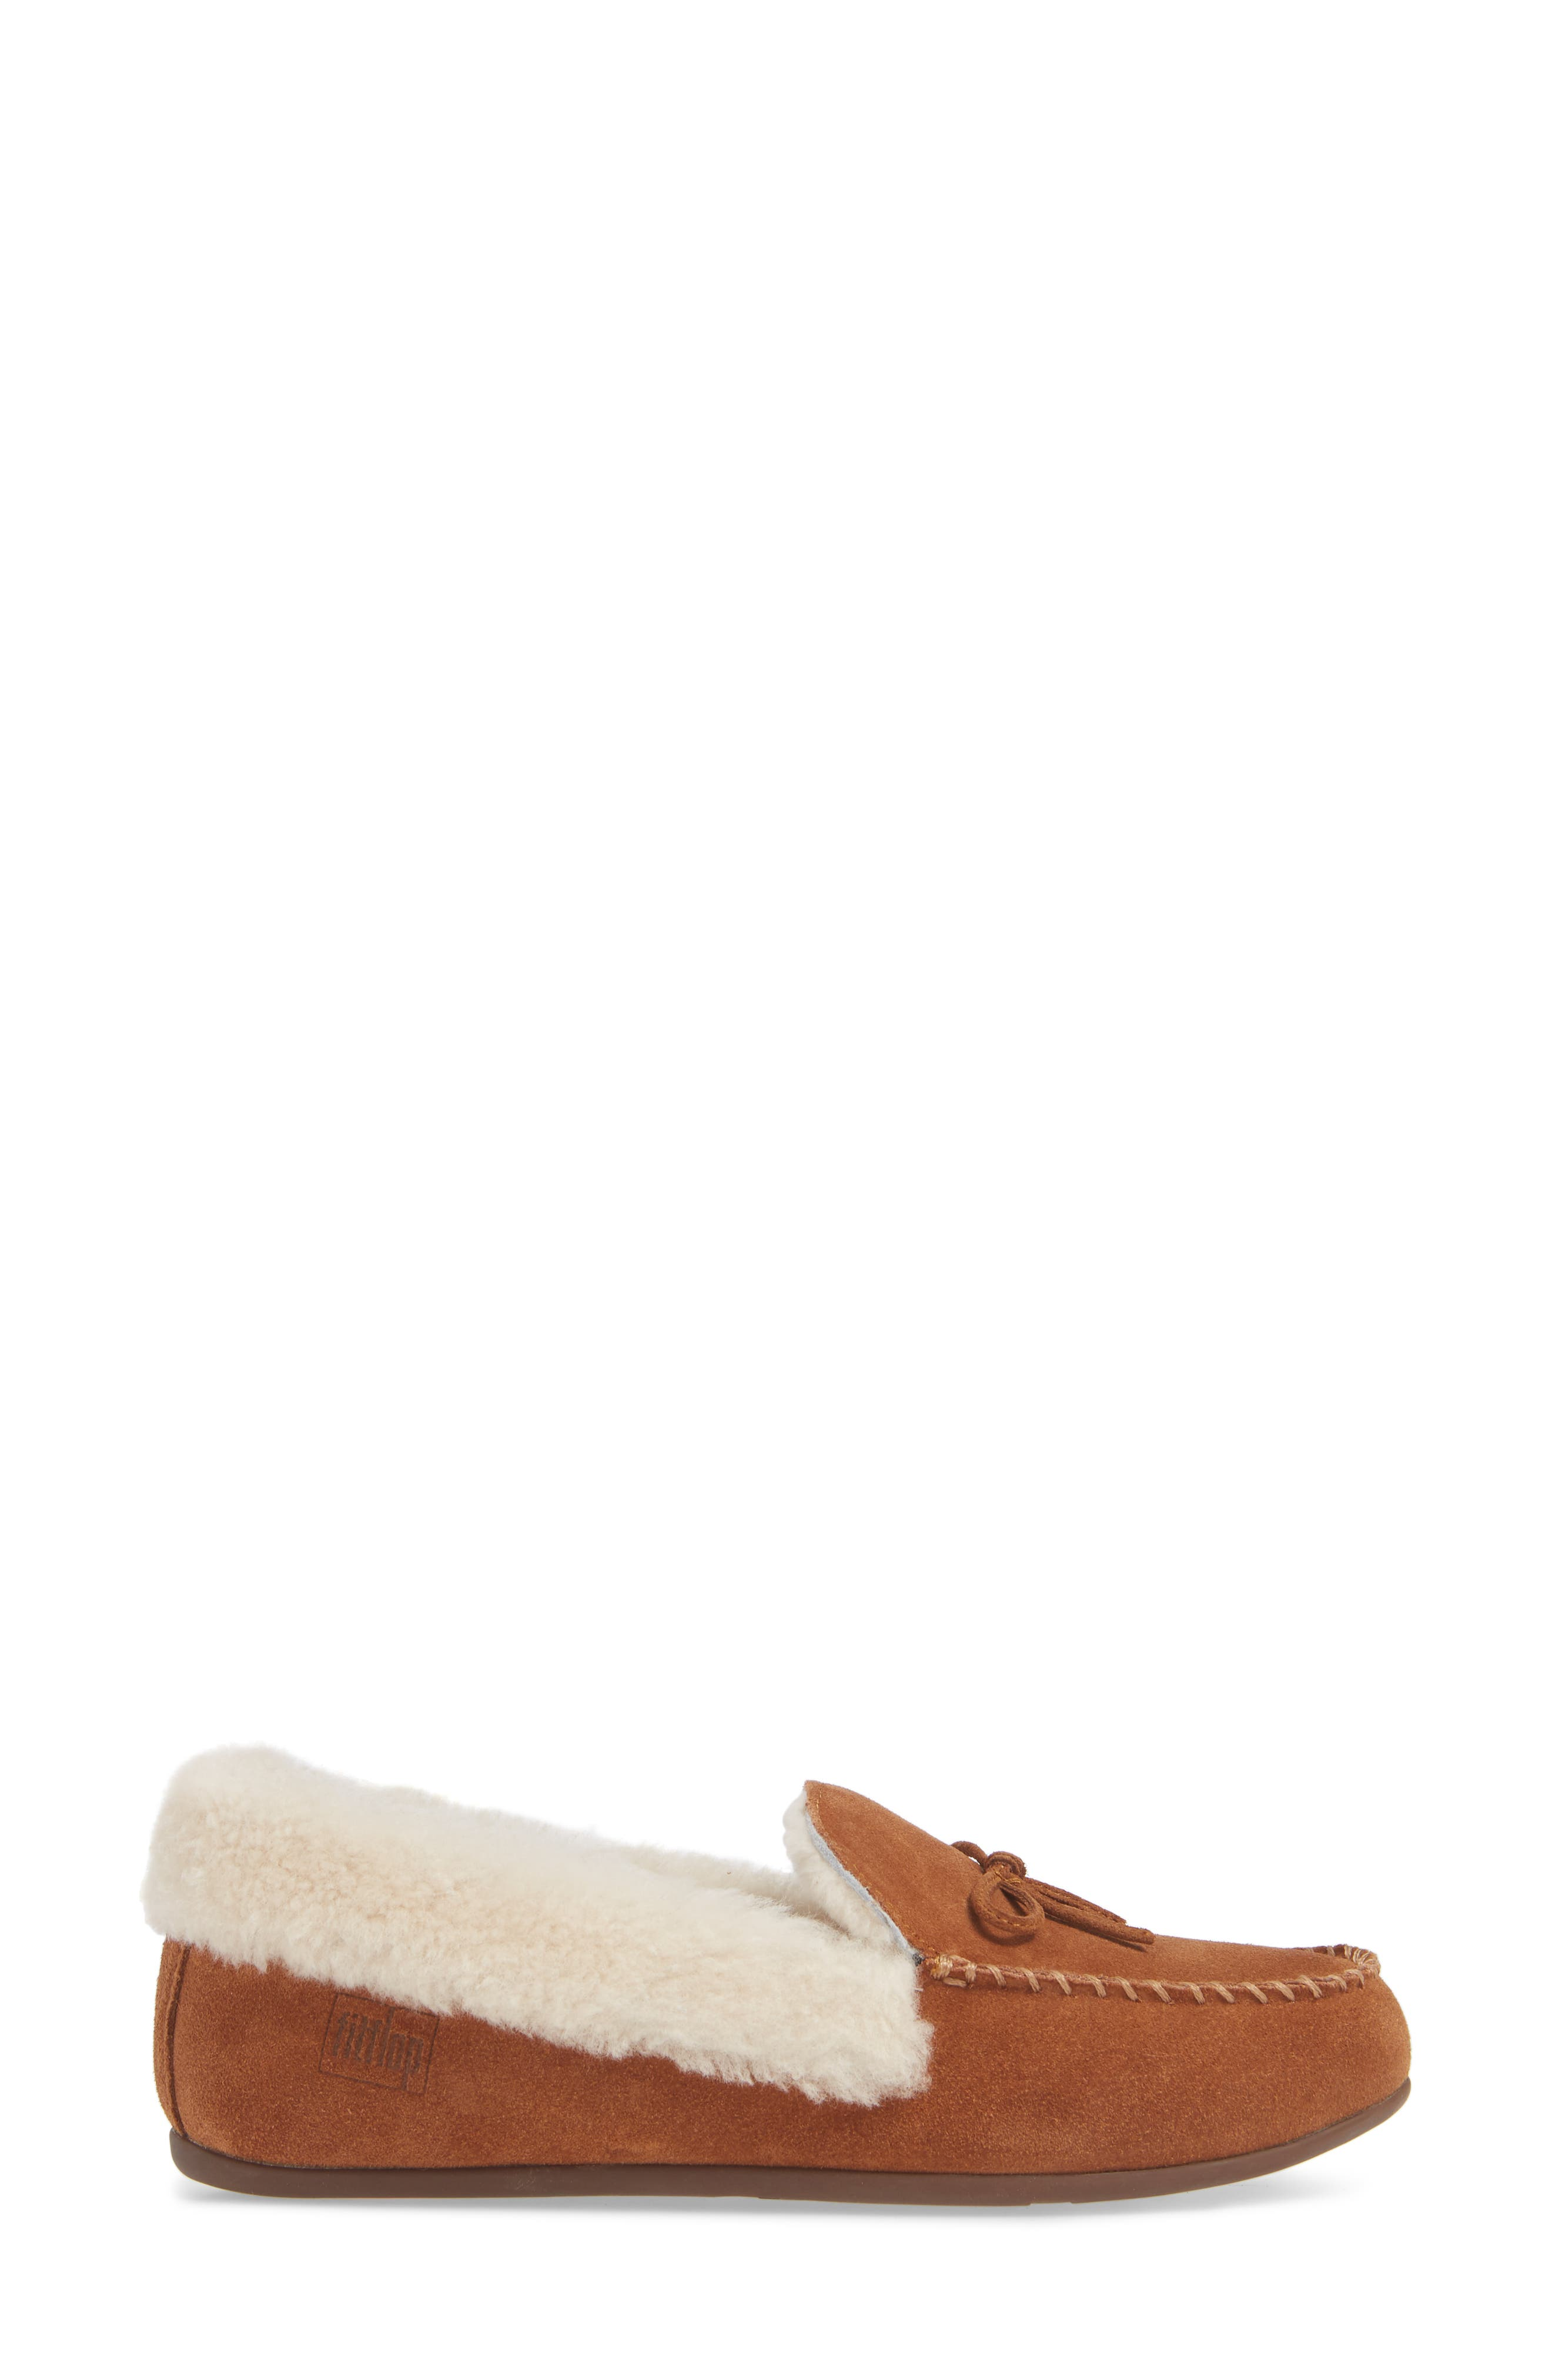 Clara Genuine Shearling Lined Moccasin,                             Alternate thumbnail 3, color,                             TUMBLED TAN SUEDE